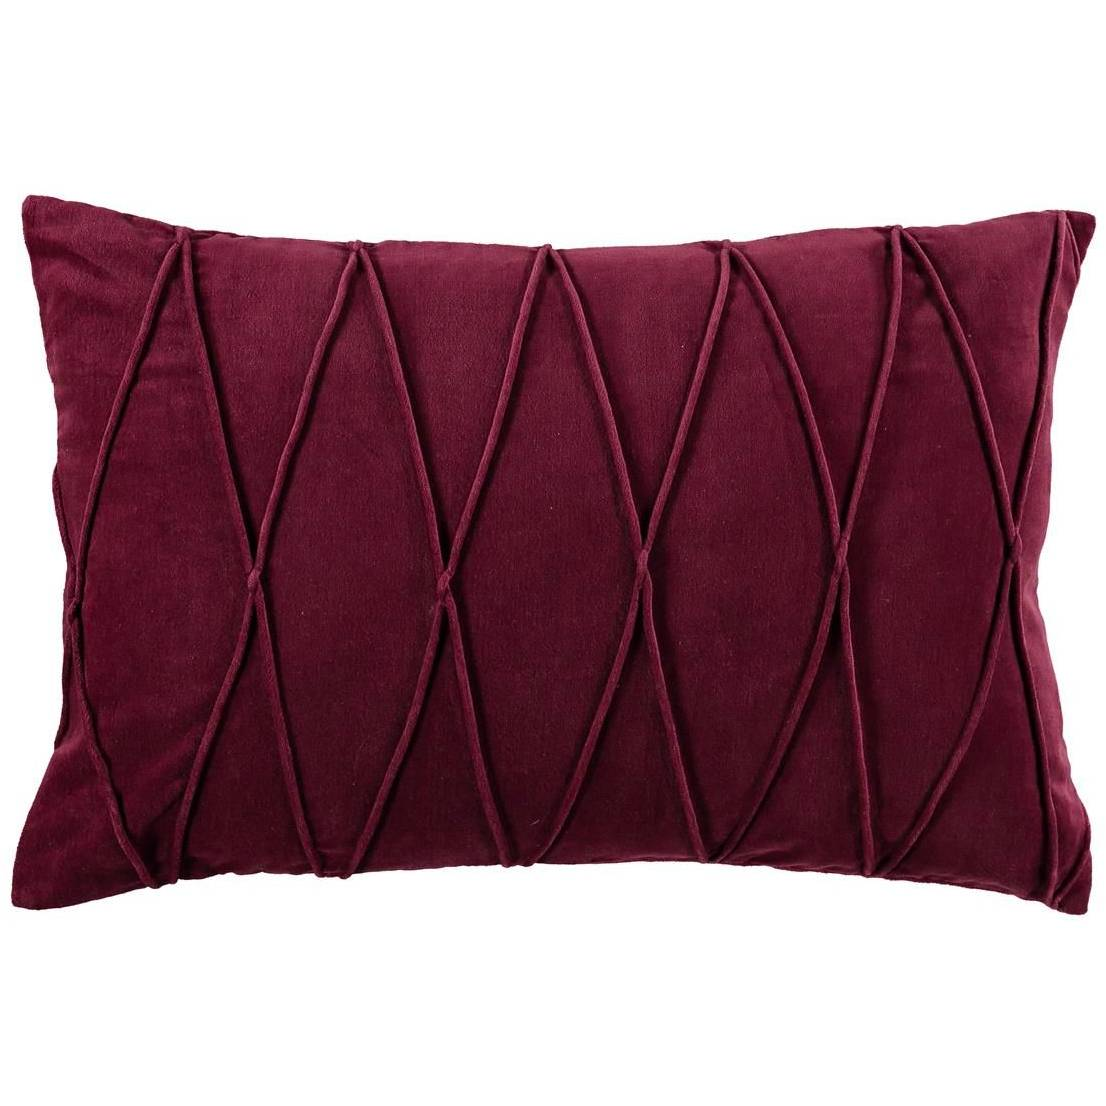 Gripsholm Ina Cushion Cover 40x60 cm, Burgundy